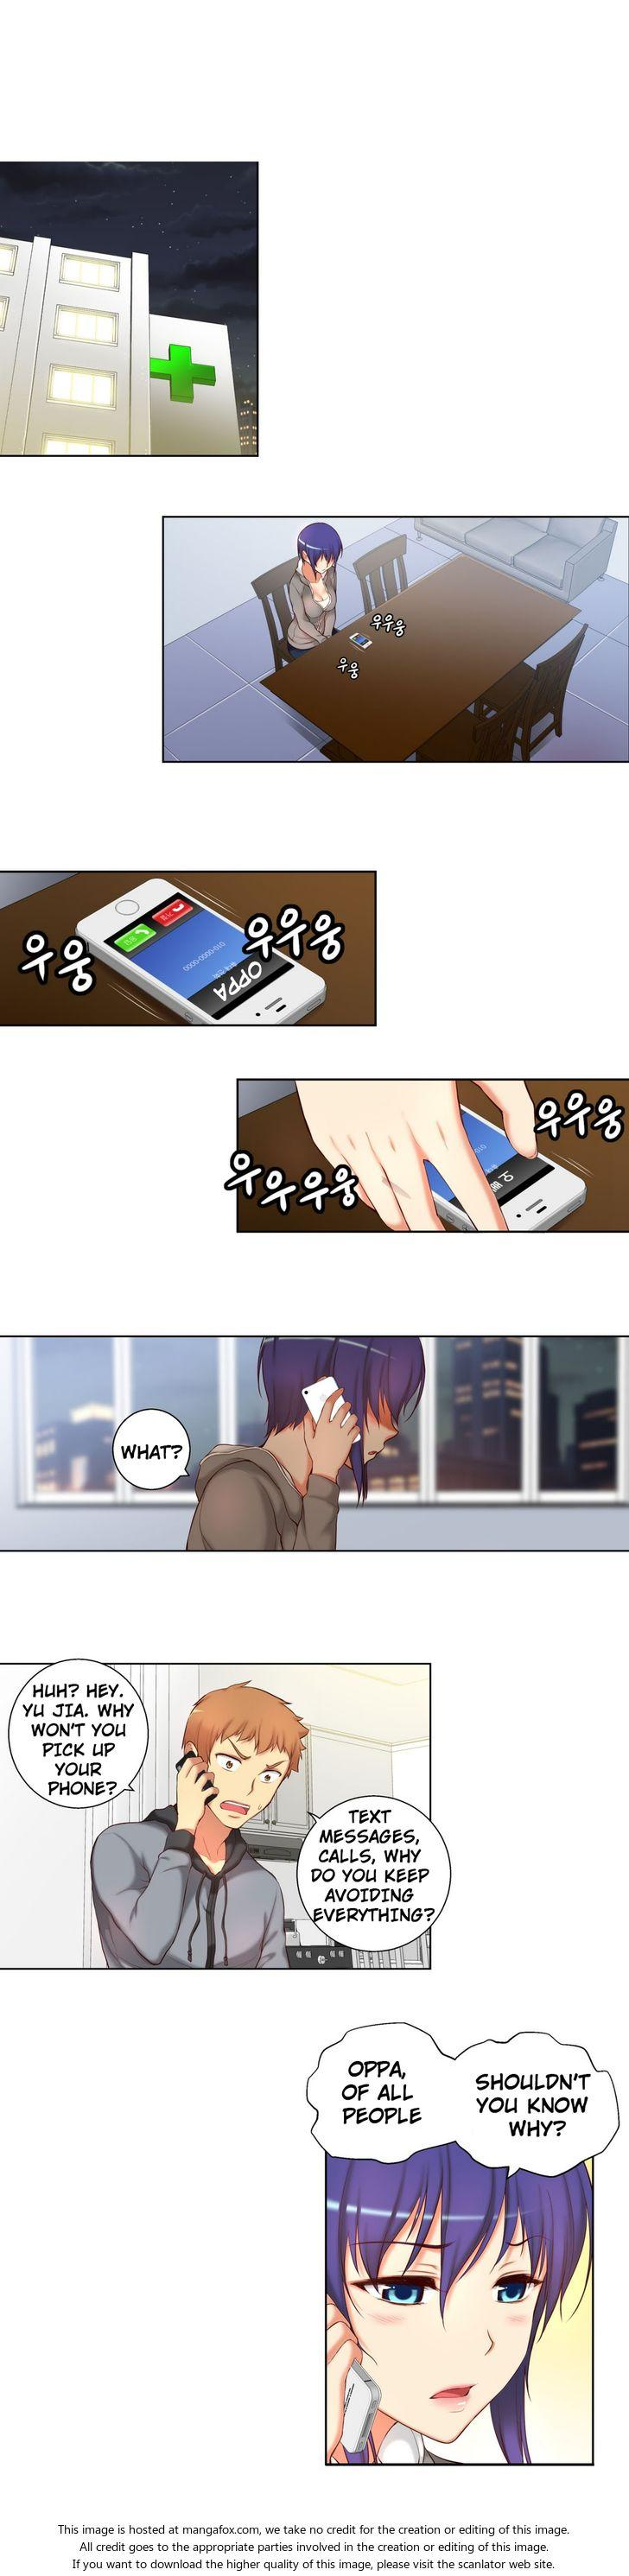 [Donggul Gom] She is Young (English) Part 1/2 781